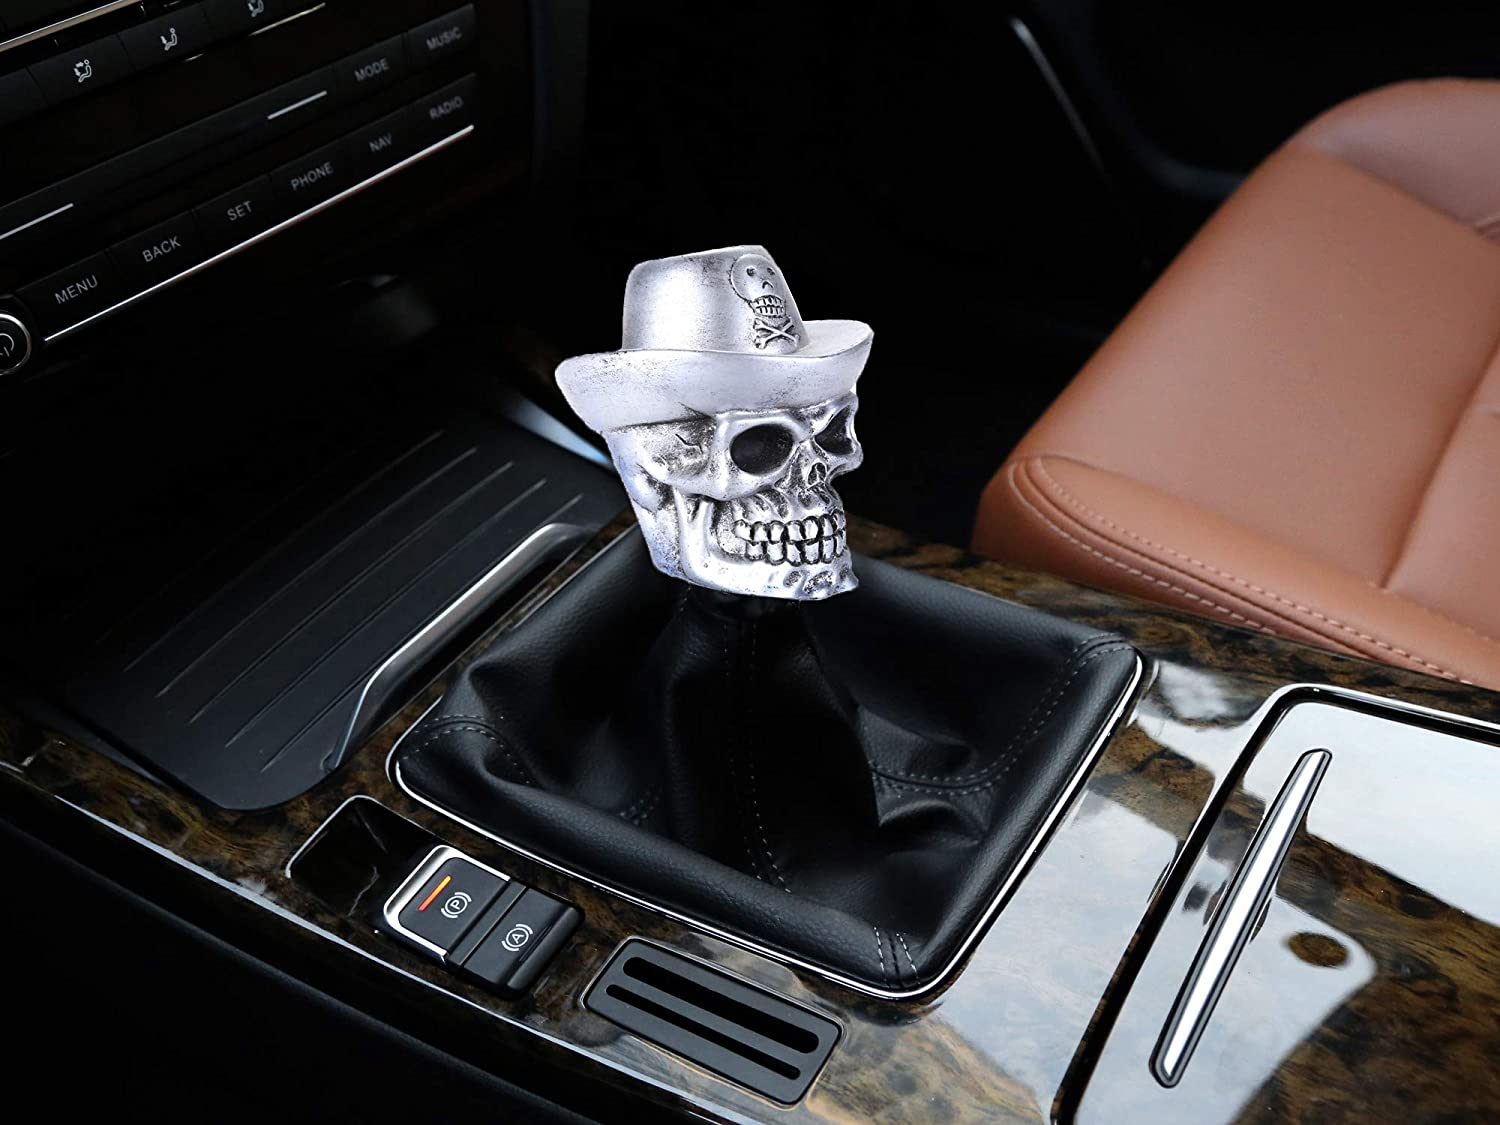 Abfer Truck Shift Knob Skull Car Manual Shifter Knobs Shifting Gear Lever Cowboy Style Fit Most Automatic MT Transmission Vehicles Silver